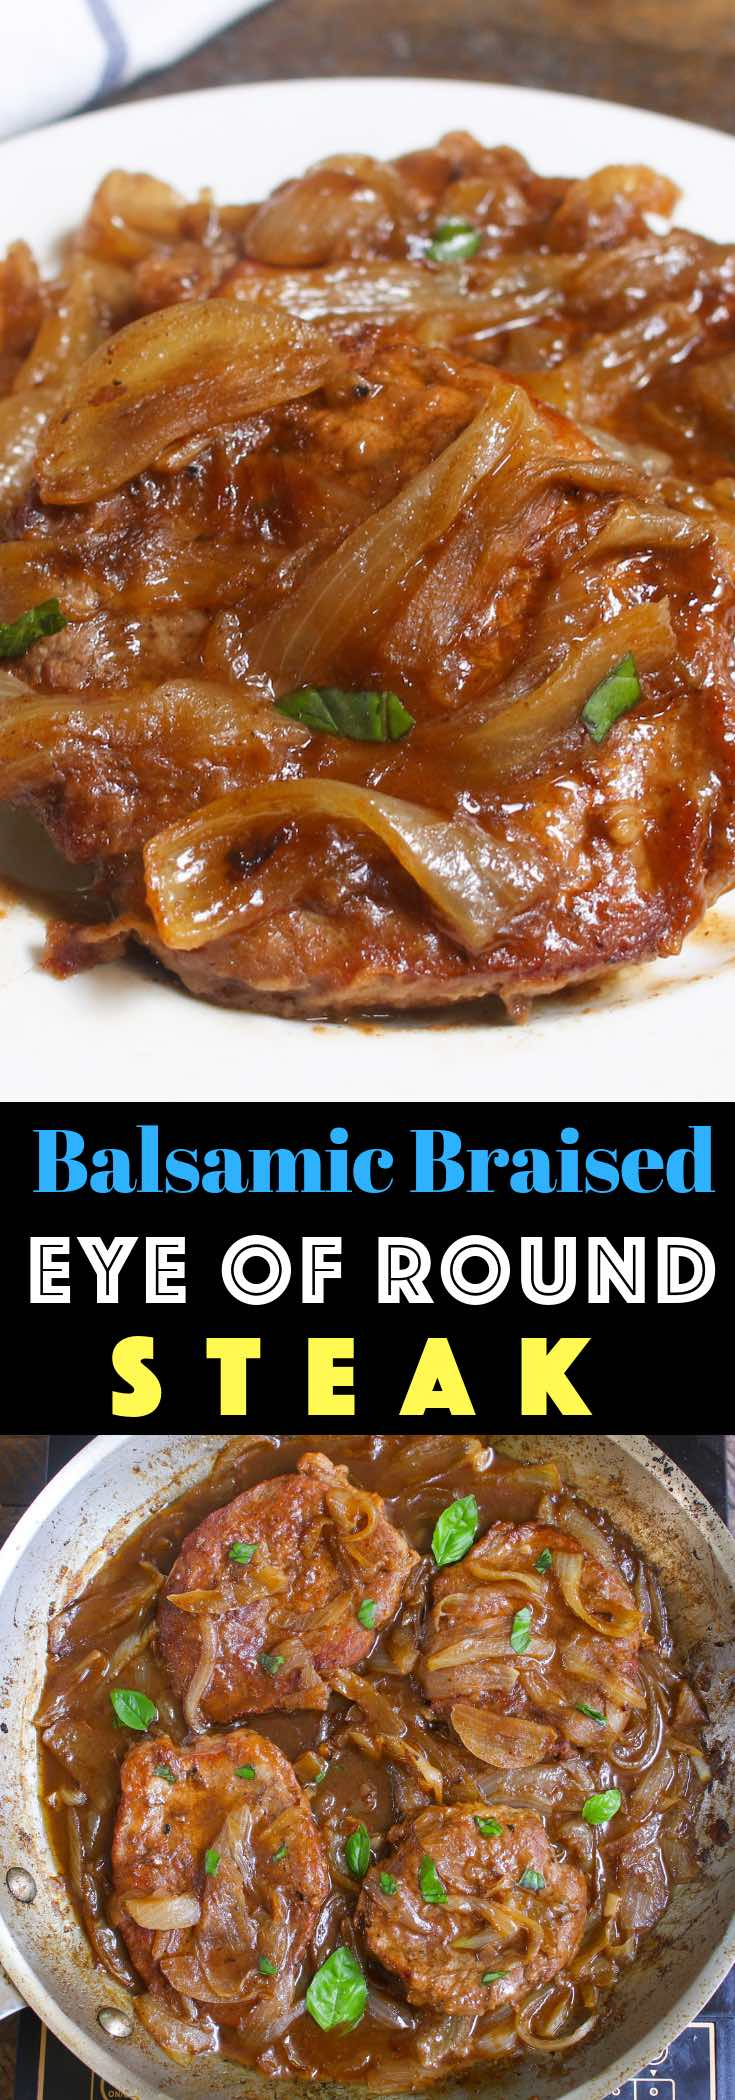 These Eye of Round Steaks are cooked low and slow until they reach fork-tender deliciousness! This simple Eye of Round Recipe is a classic where the braising method tenderizes lean and tough meat into mouth-watering pieces.